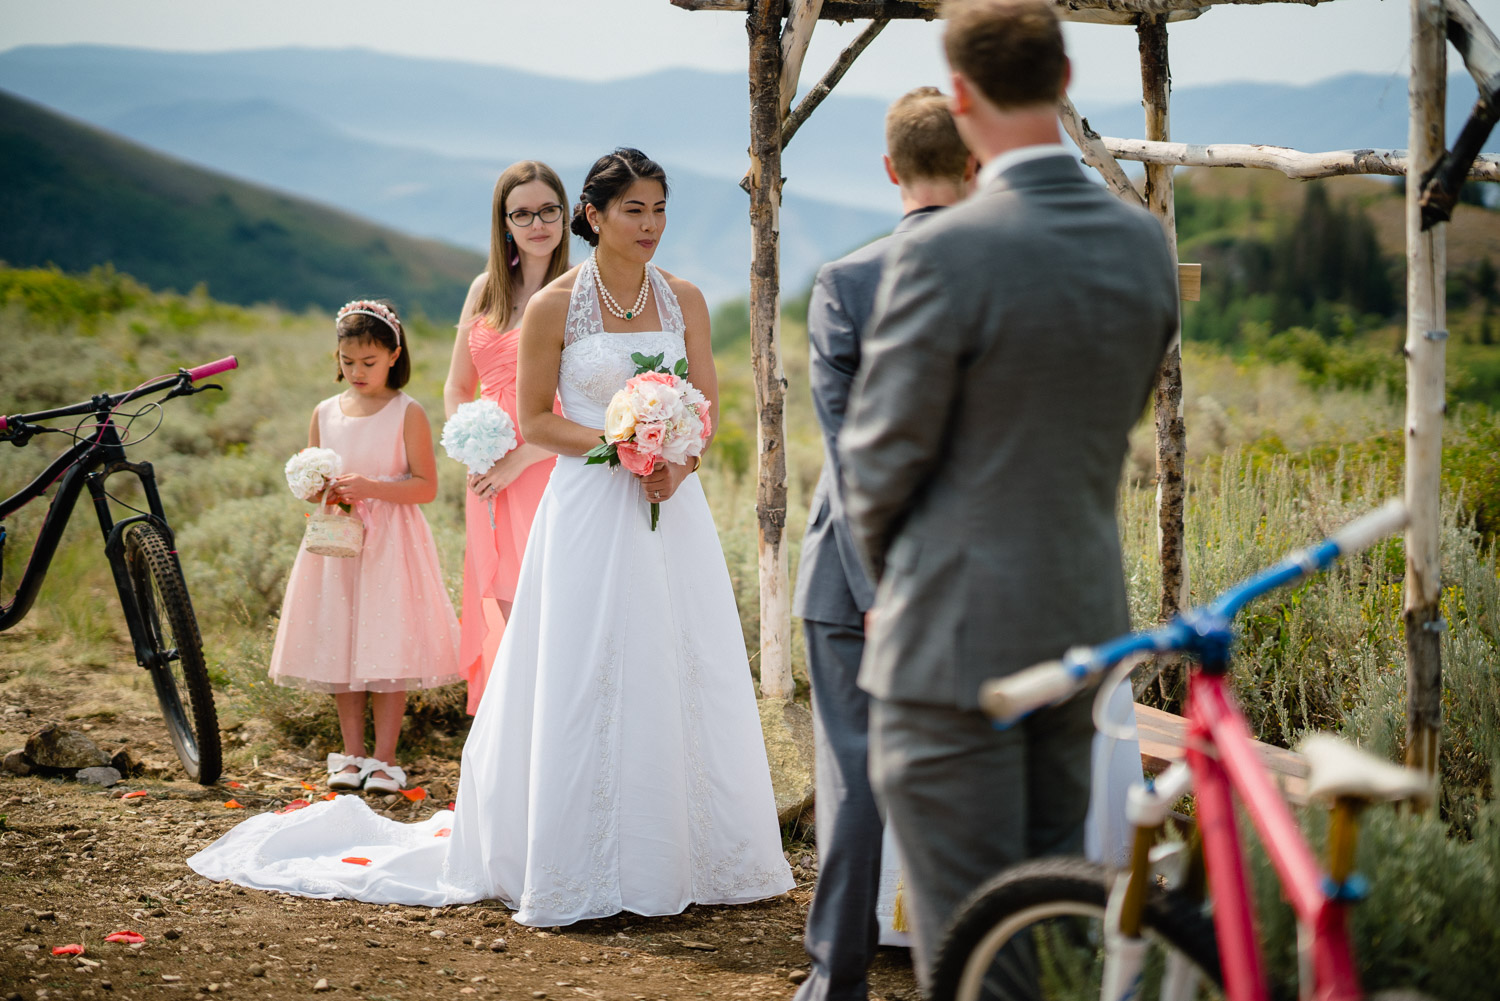 bridal party at outdoor altar during wedding ceremony